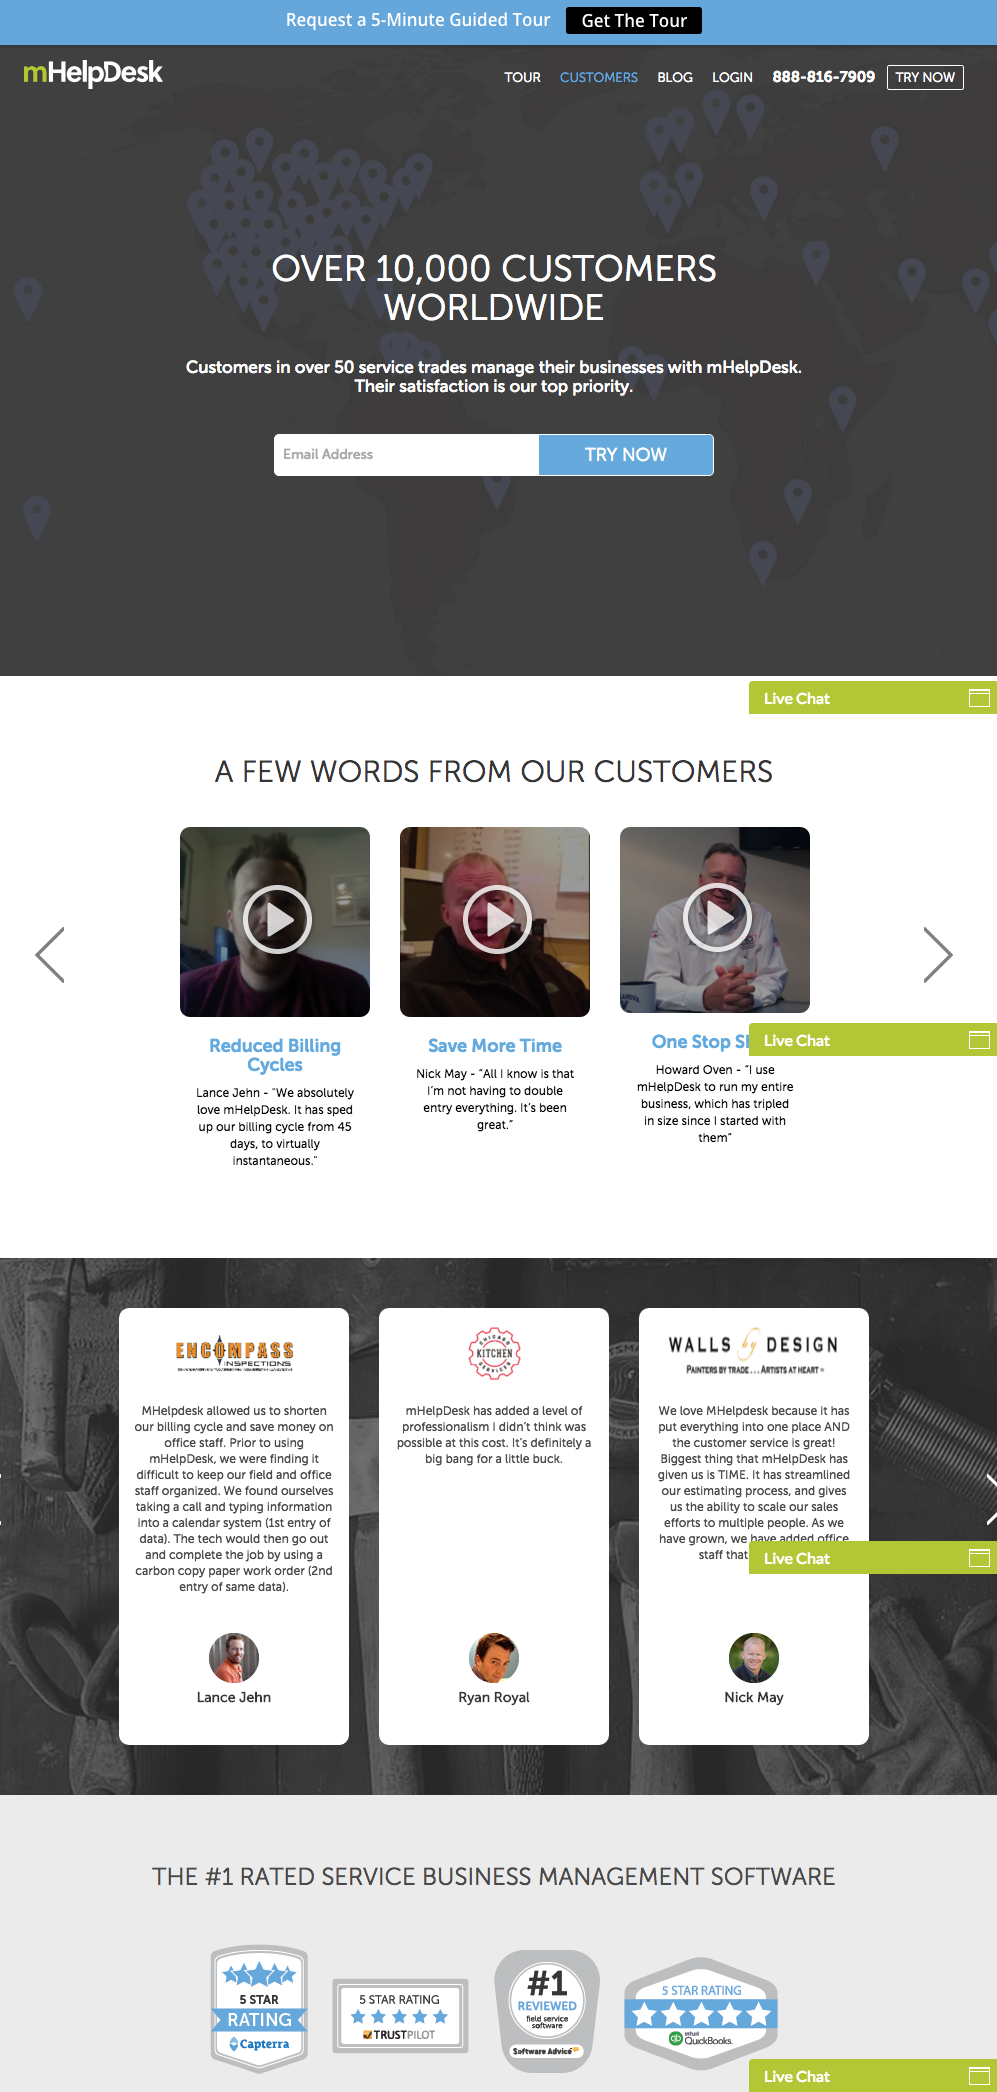 mhelpdesk-testimonial-page.png?noresize